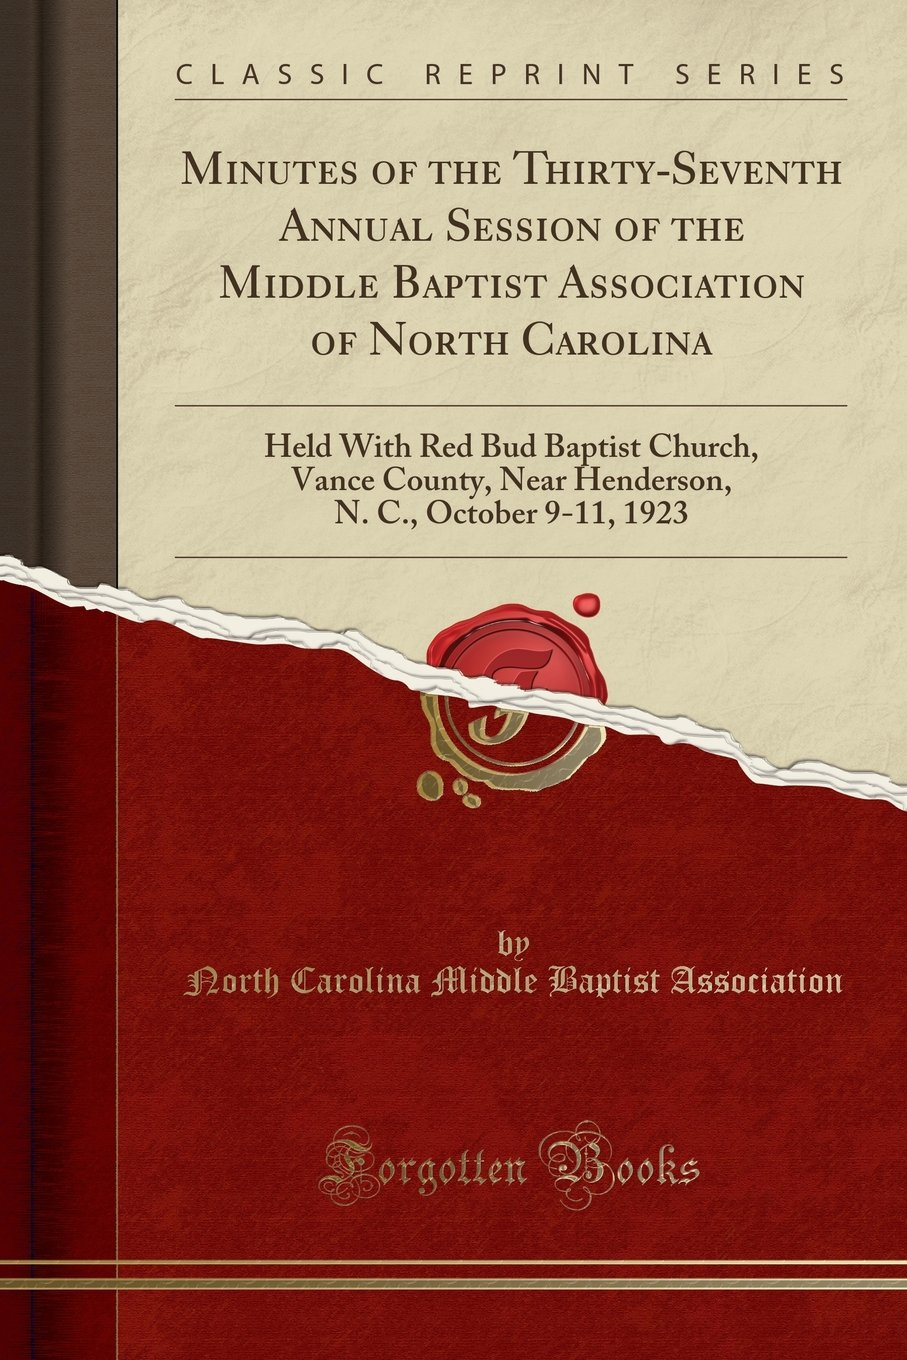 Read Online Minutes of the Thirty-Seventh Annual Session of the Middle Baptist Association of North Carolina: Held With Red Bud Baptist Church, Vance County, Near ... N. C., October 9-11, 1923 (Classic Reprint) pdf epub